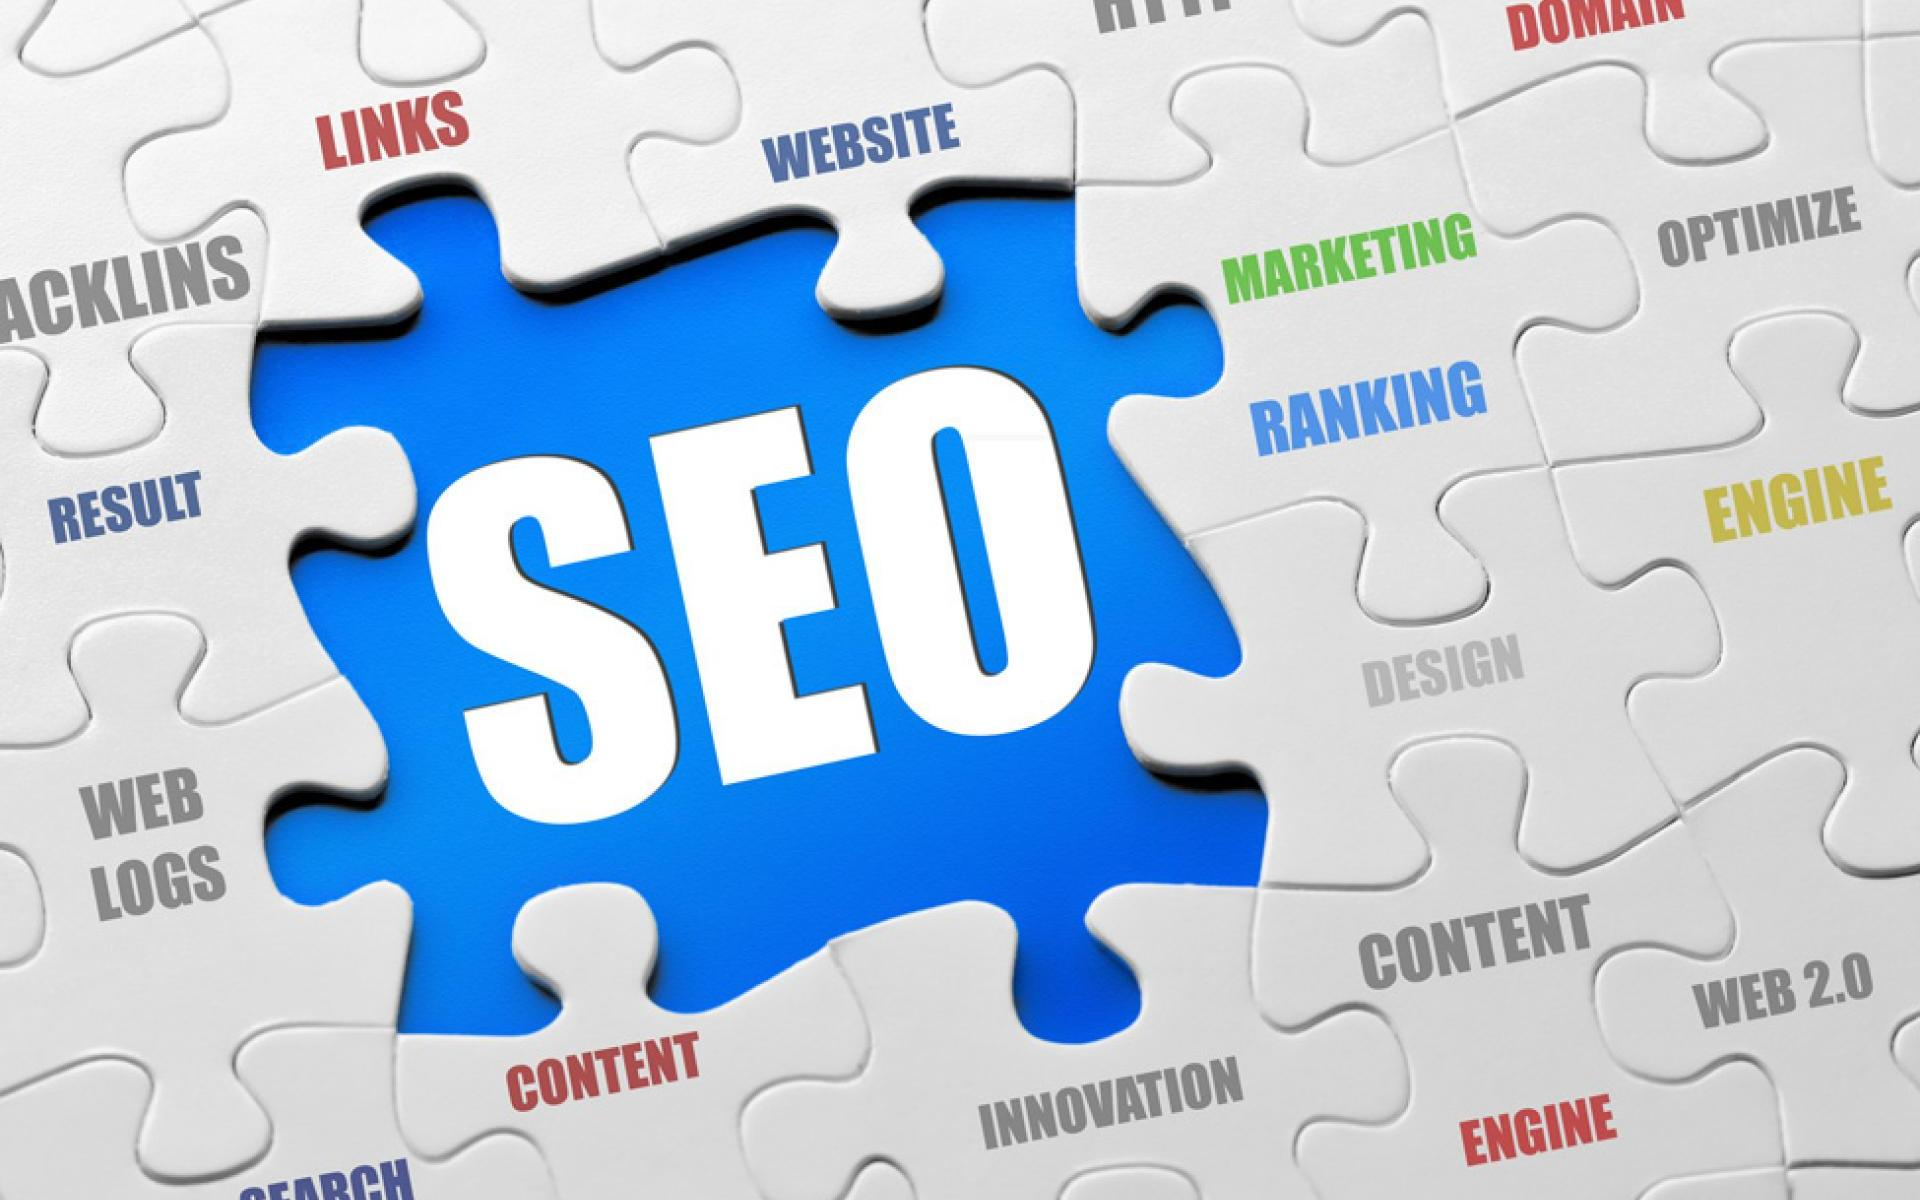 More SEO Tips You Can Use Today